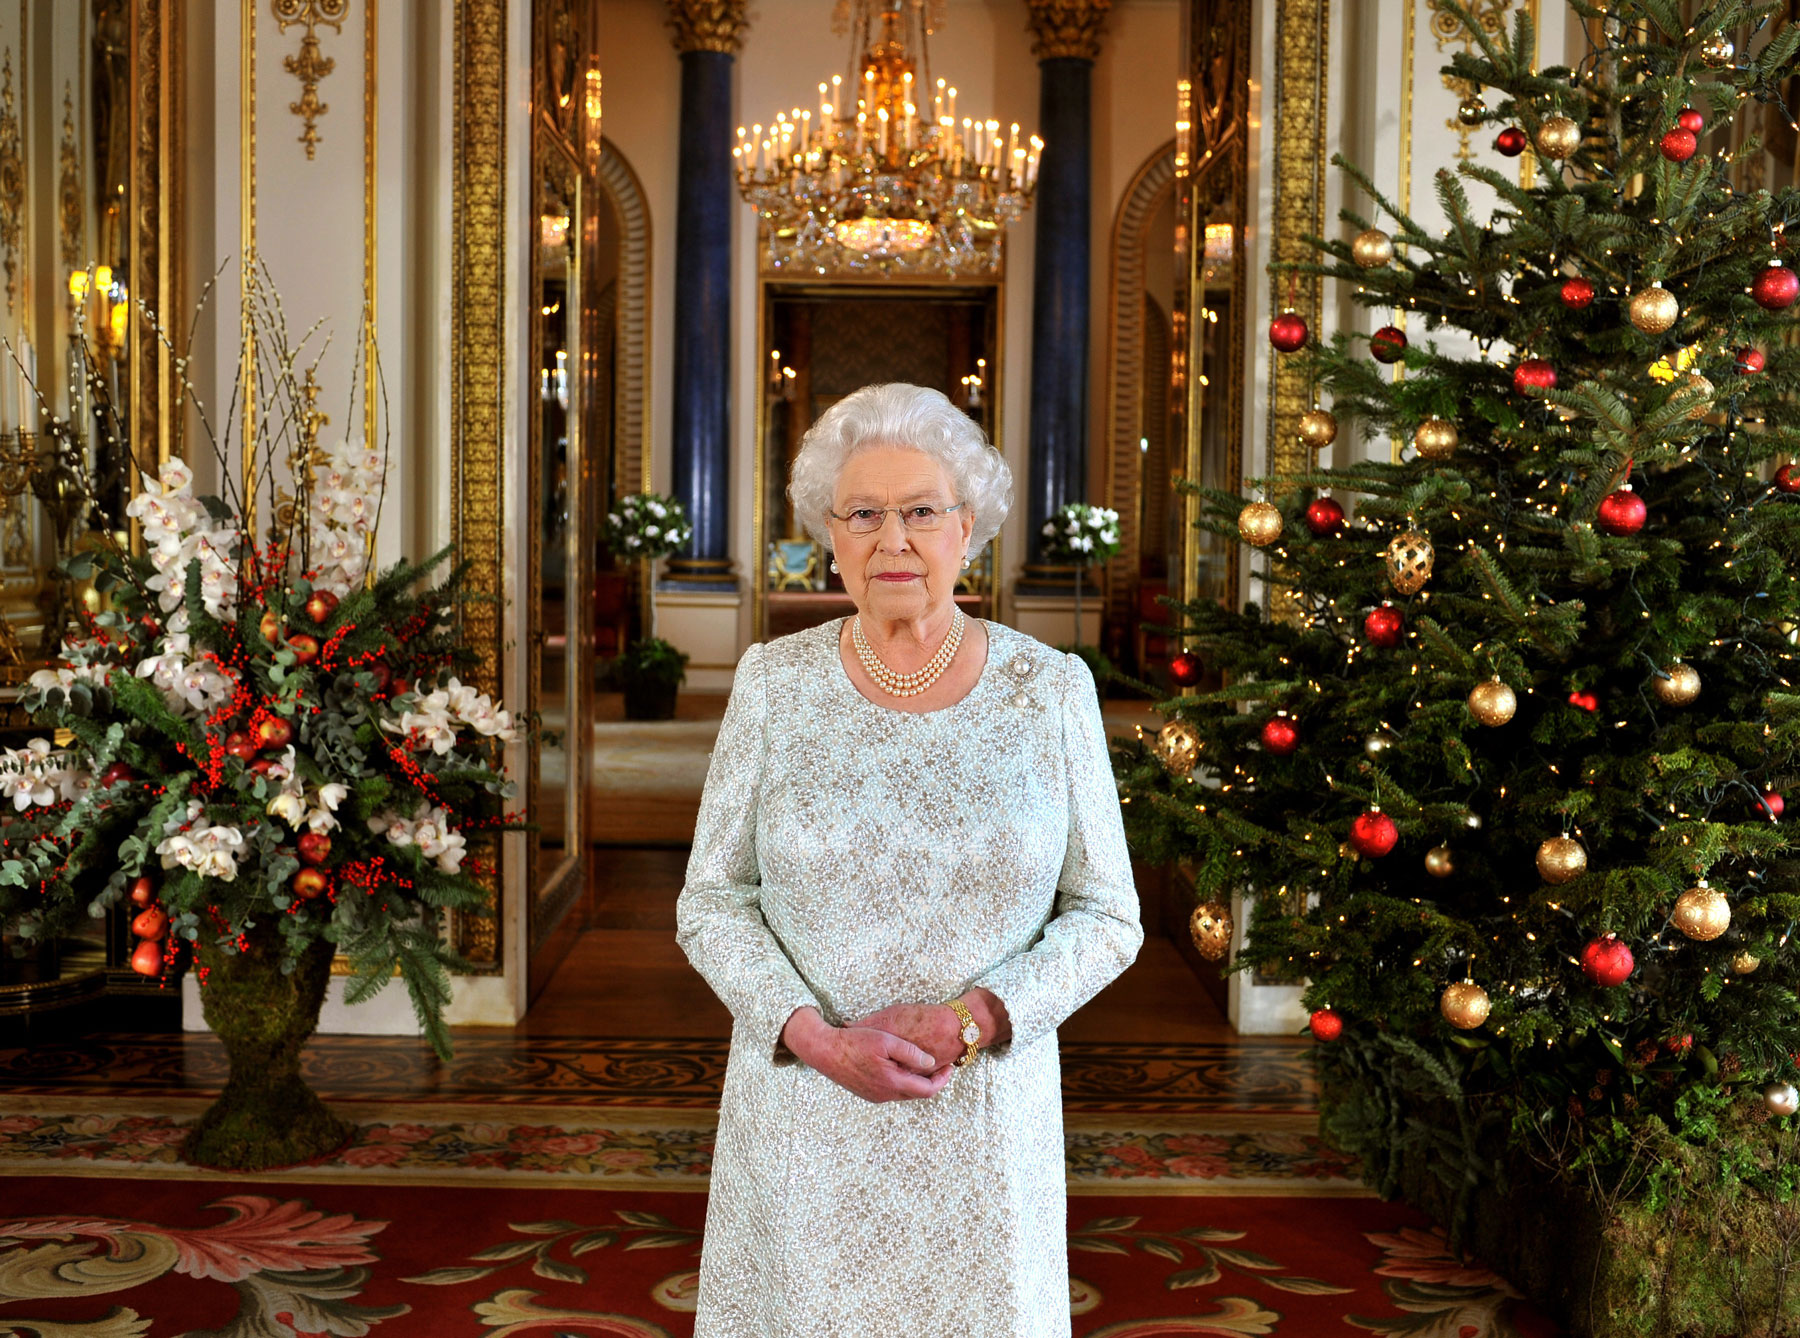 Queen Elizabeth II surrounded by Christmas decor